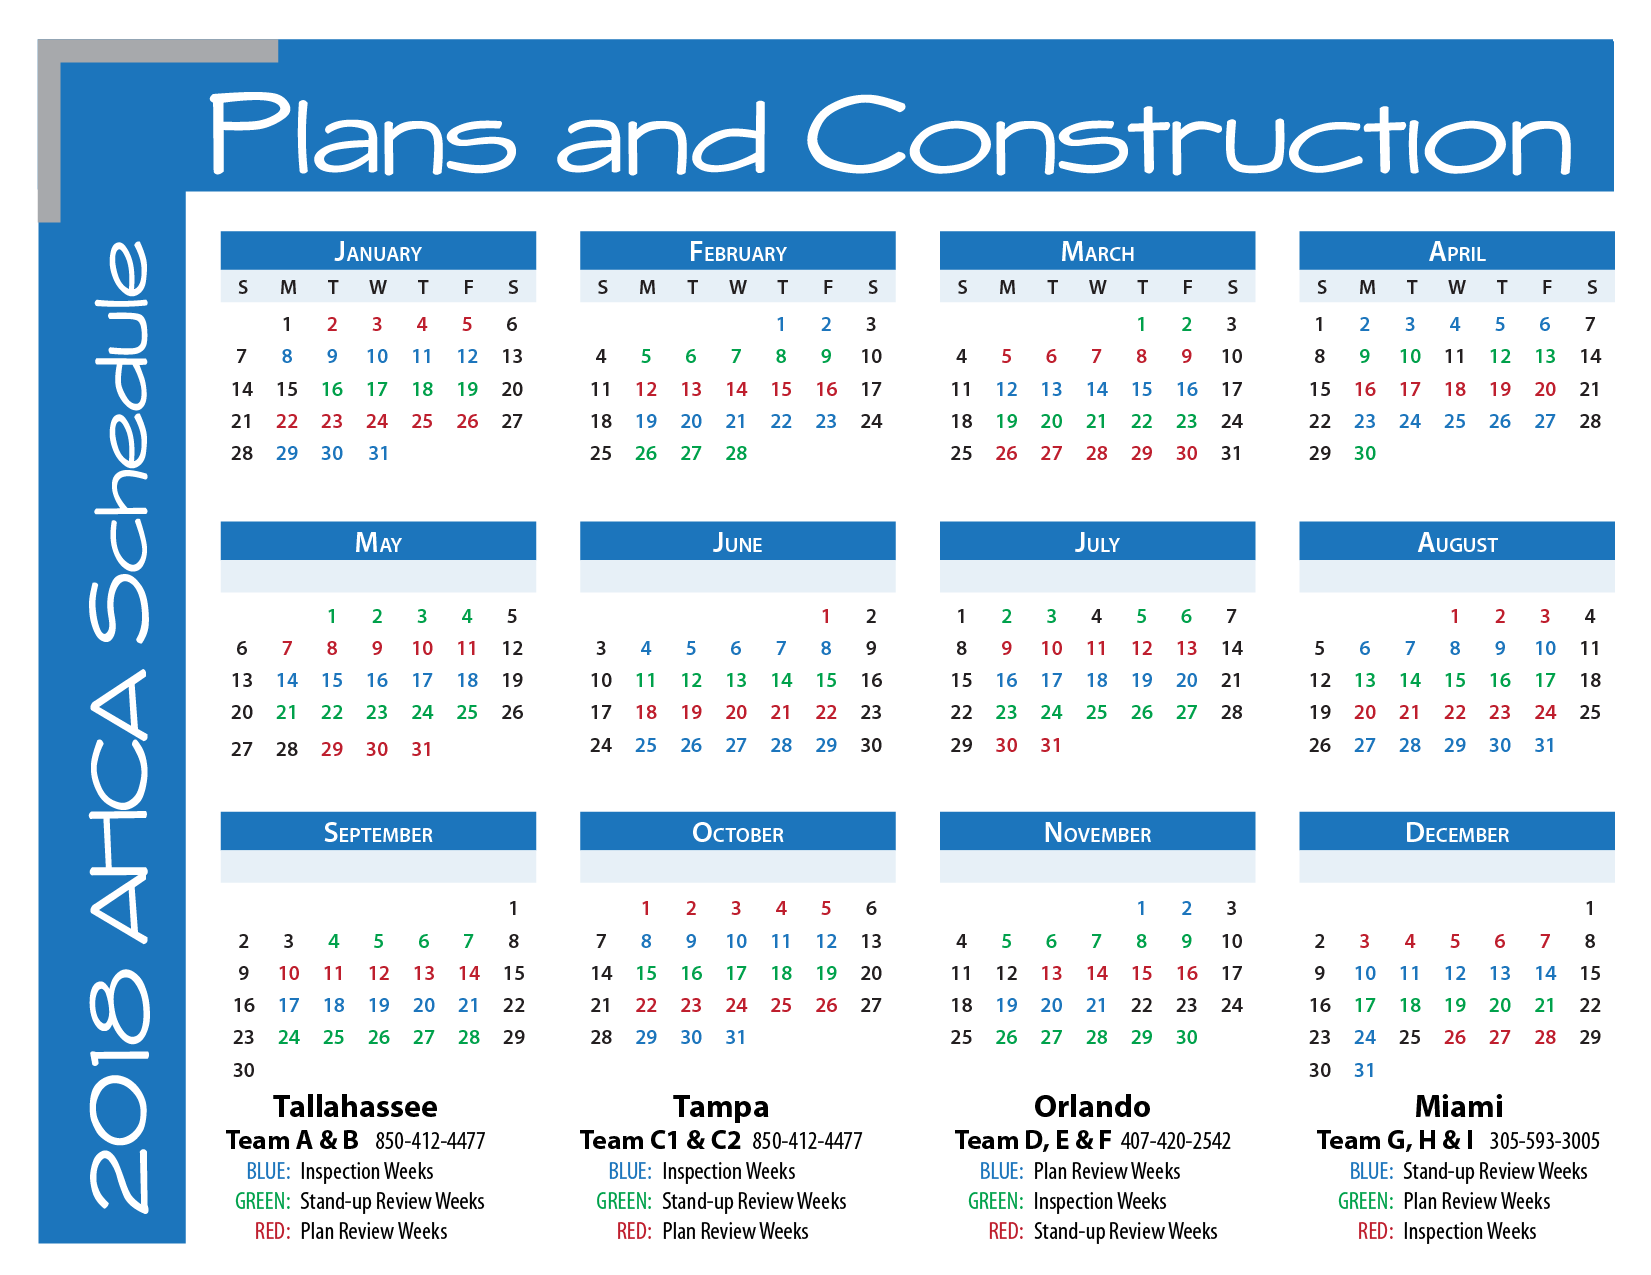 AHCA: Plans and Construction: 2018 Schedule Calendar